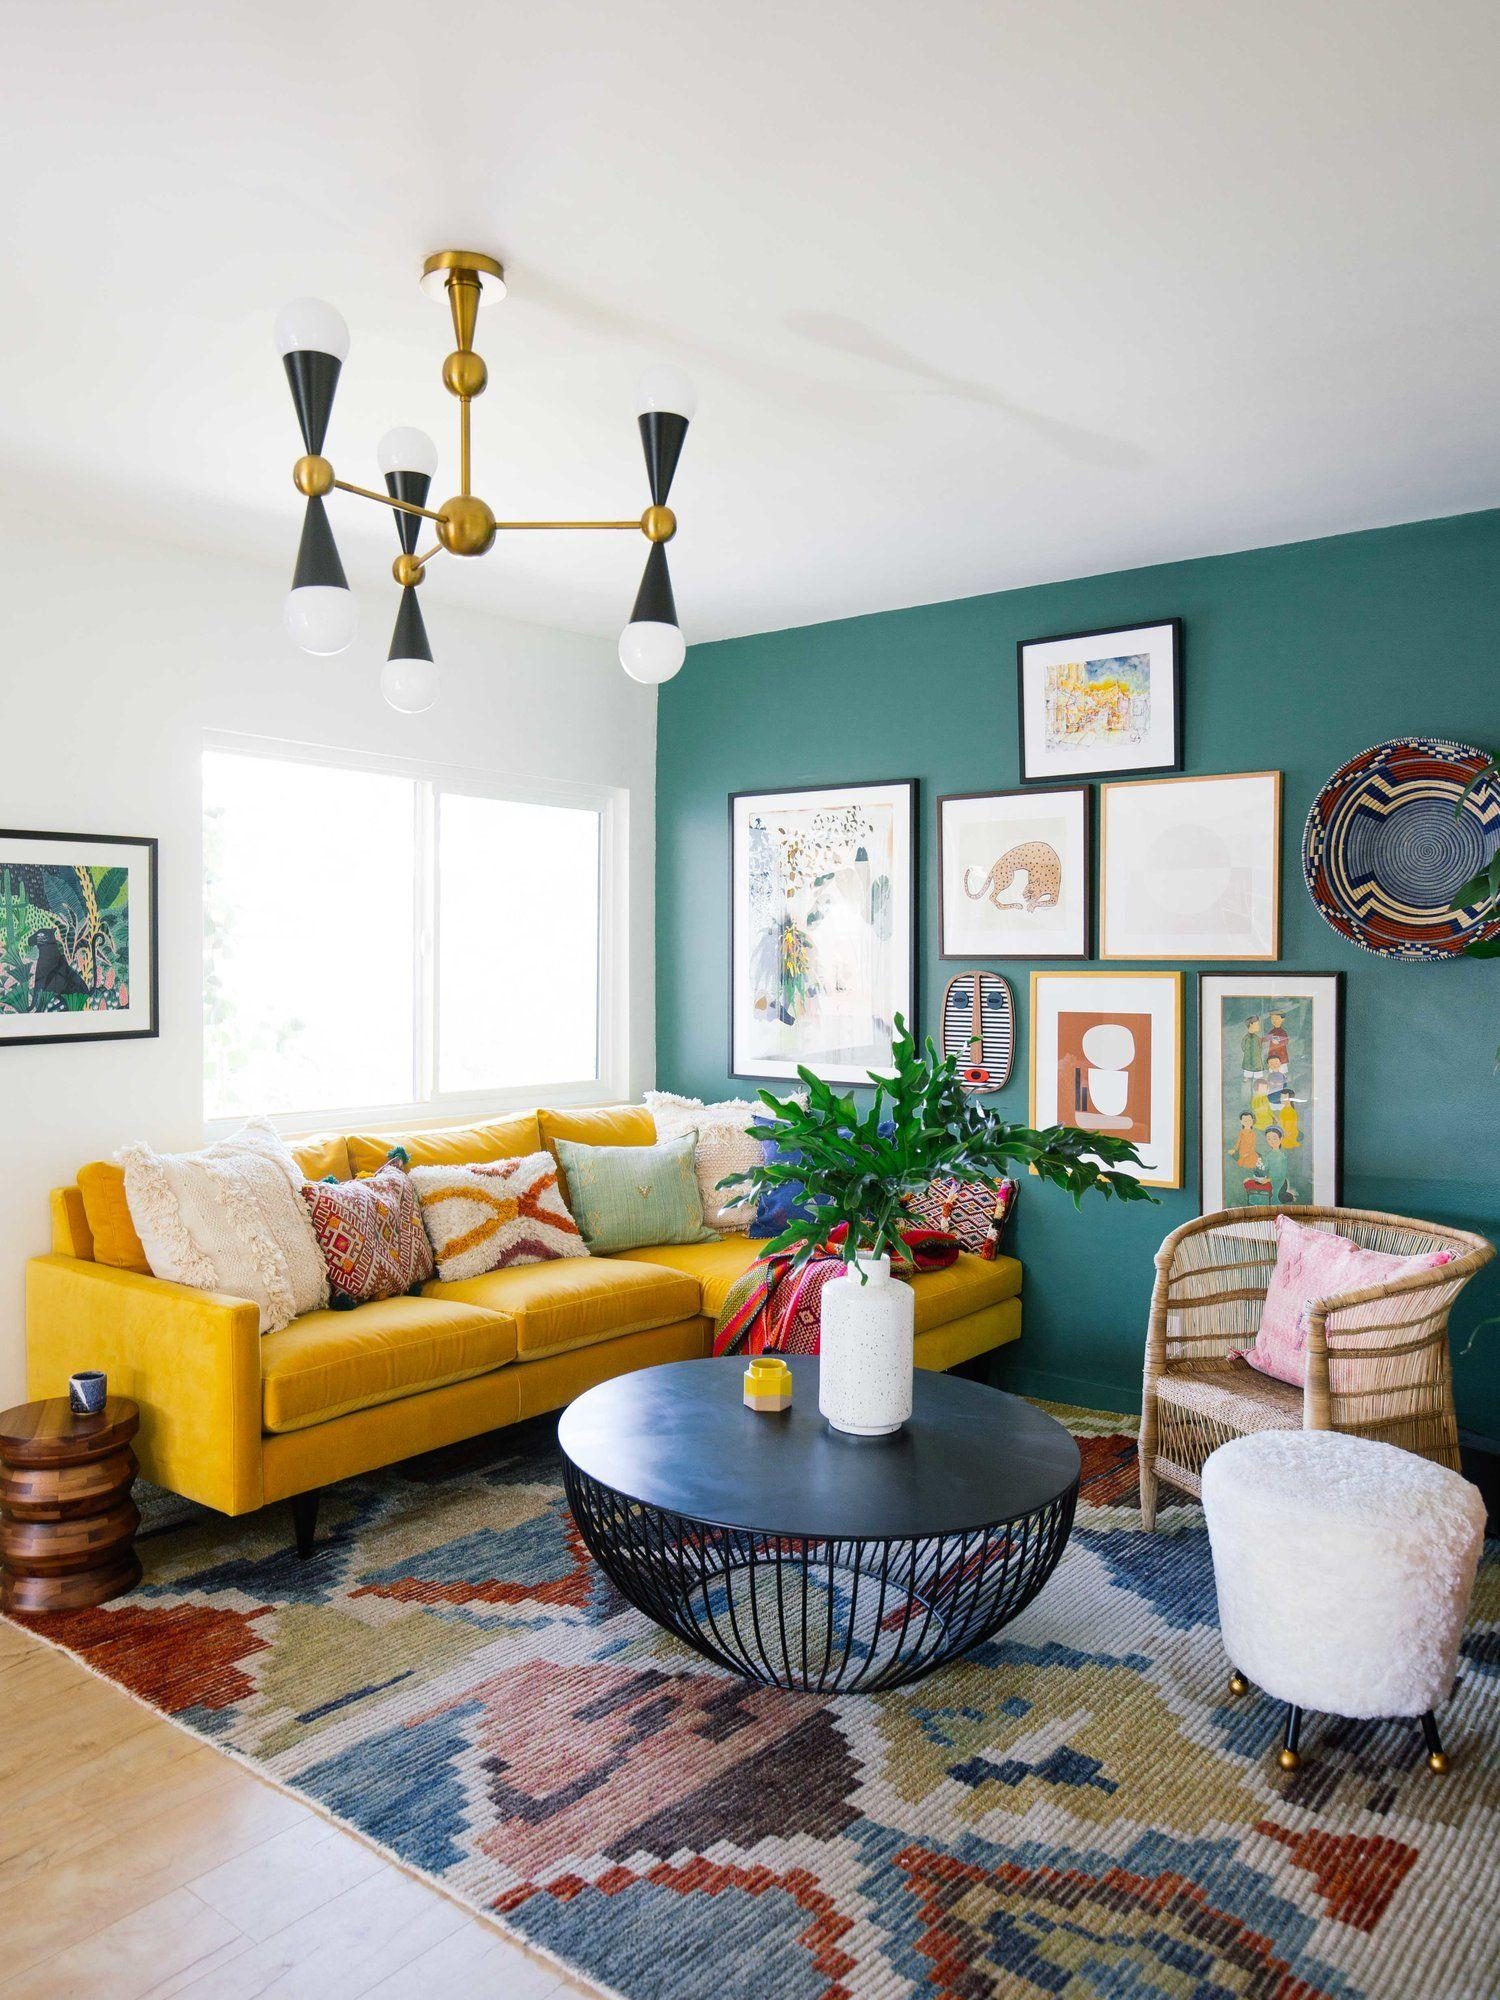 Image result for Eclectic pieces and print:living room  pinterest